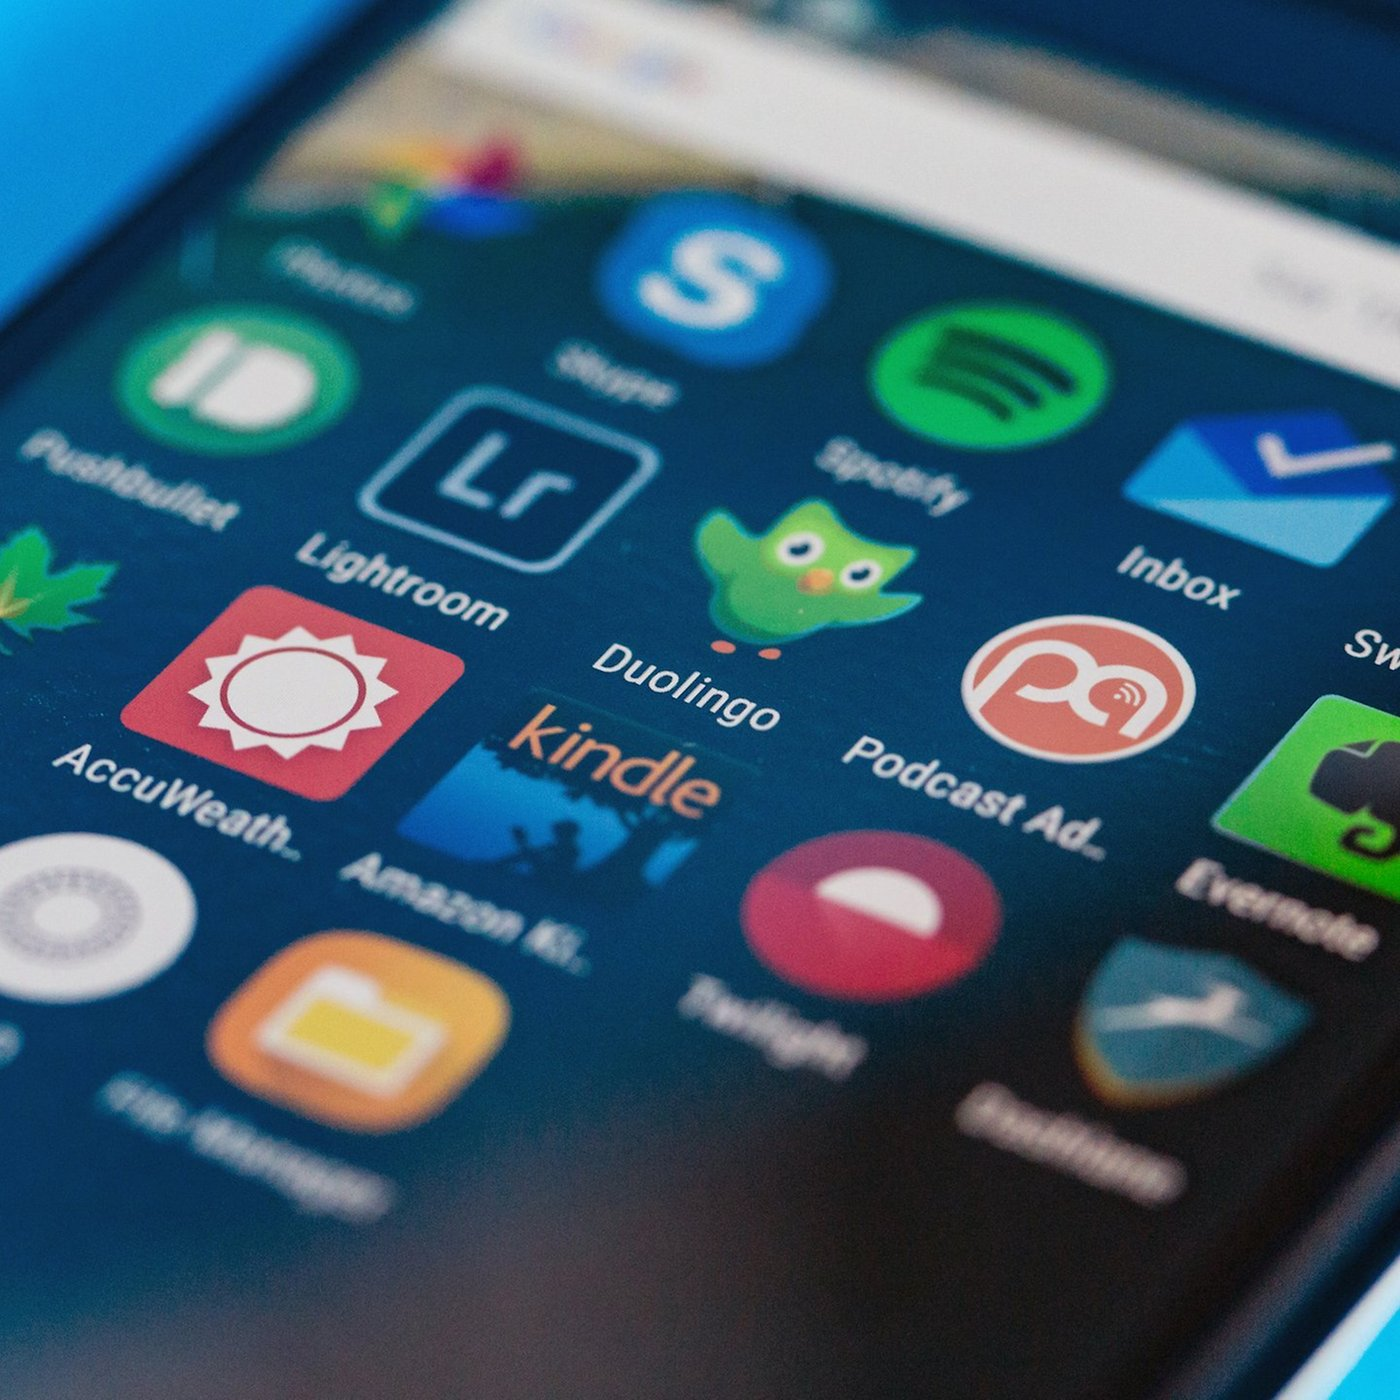 Time Saving and Management Apps